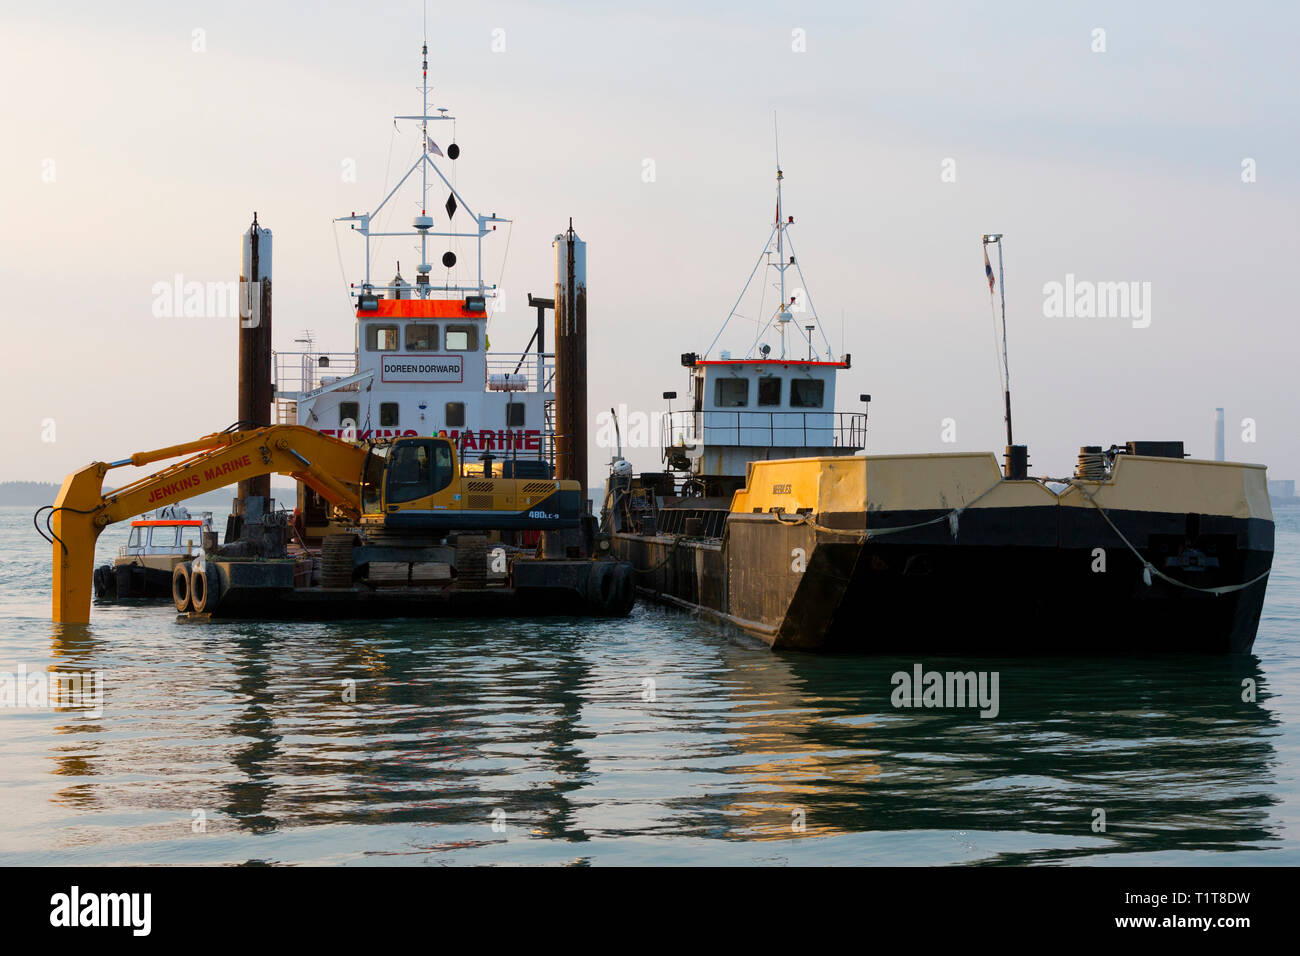 dredging,dredger,hopper,barge,harbour,harbor,JCB,digger,mud,gravel,increasing,depth,channel,waterway,sea,silted,up,silt,grab,Cowes,Isle of Wight, - Stock Image